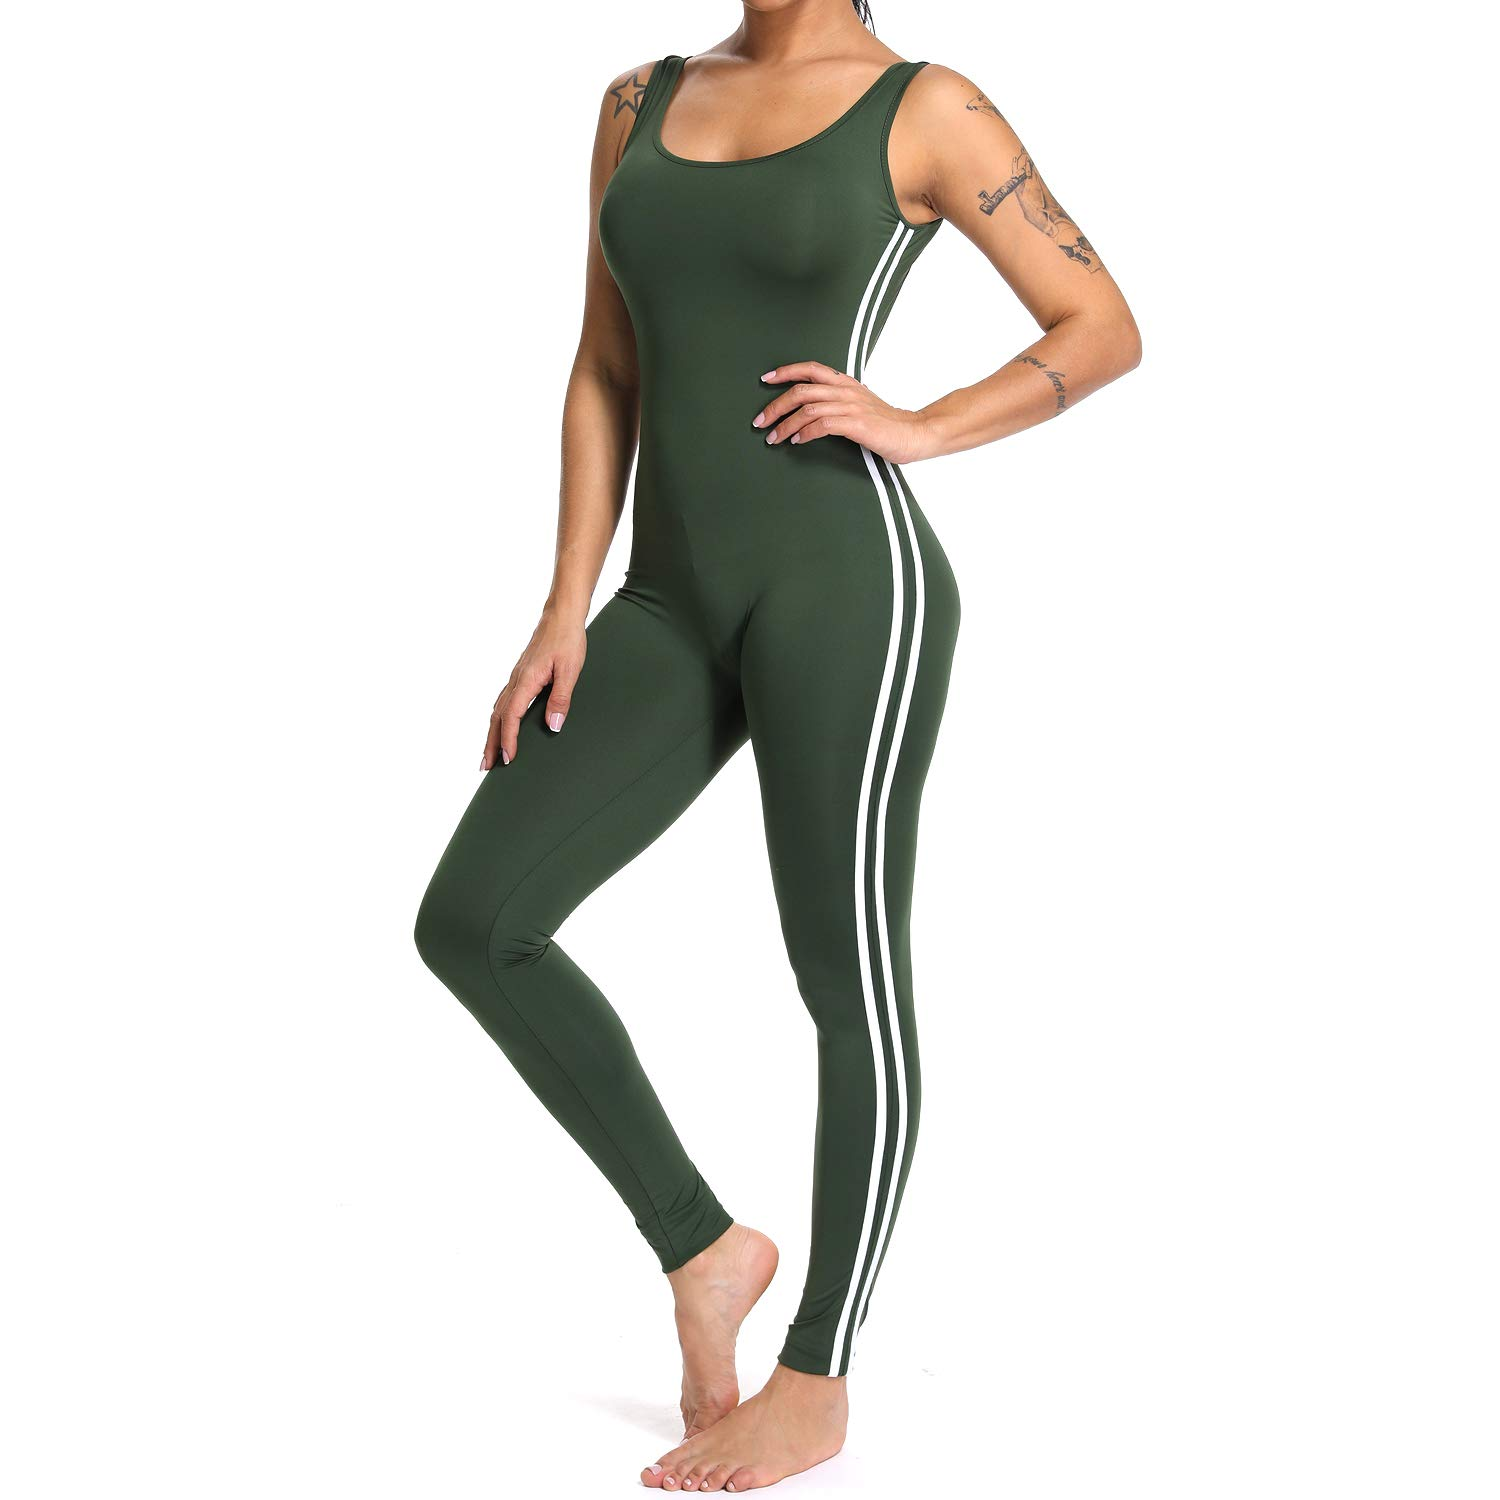 0022cff0df1e YOFIT Women Sexy Jumpsuits Athletic Clothes Low-Cut Back Yoga Rompers  Sleeveless Bodysuit  Amazon.co.uk  Clothing